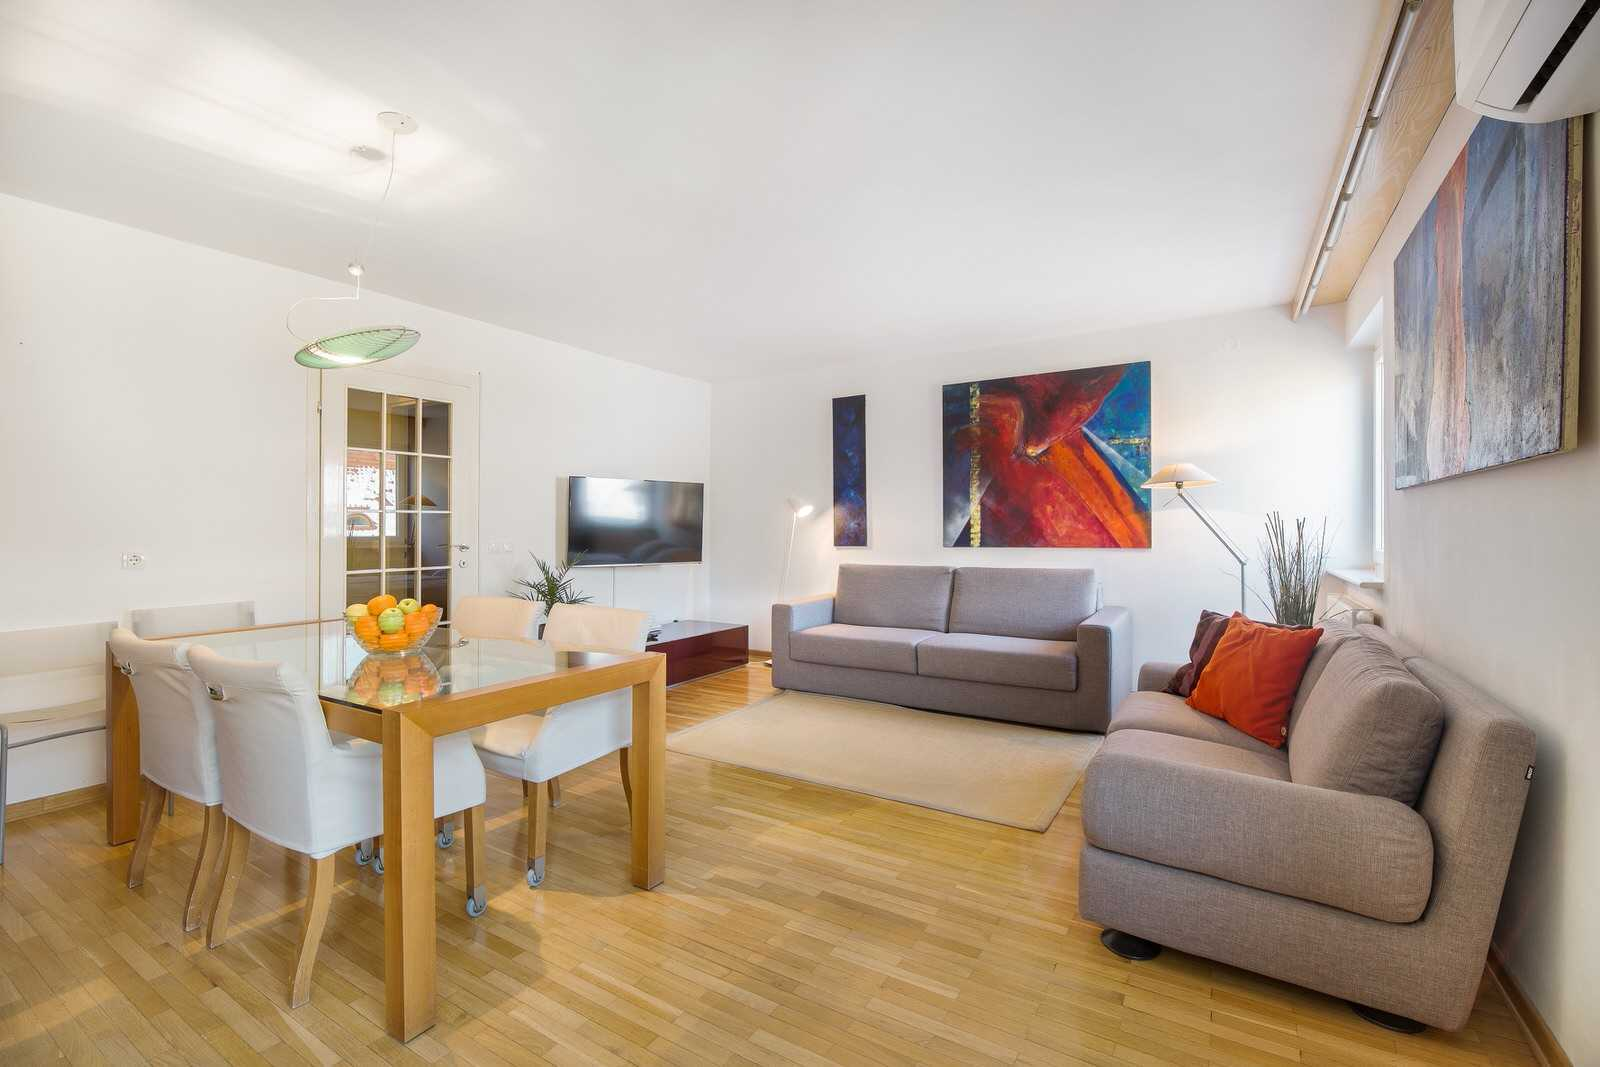 Ljubljana rental apartment Dalmatinova - living room with two sofas of which one is a sofa bed.